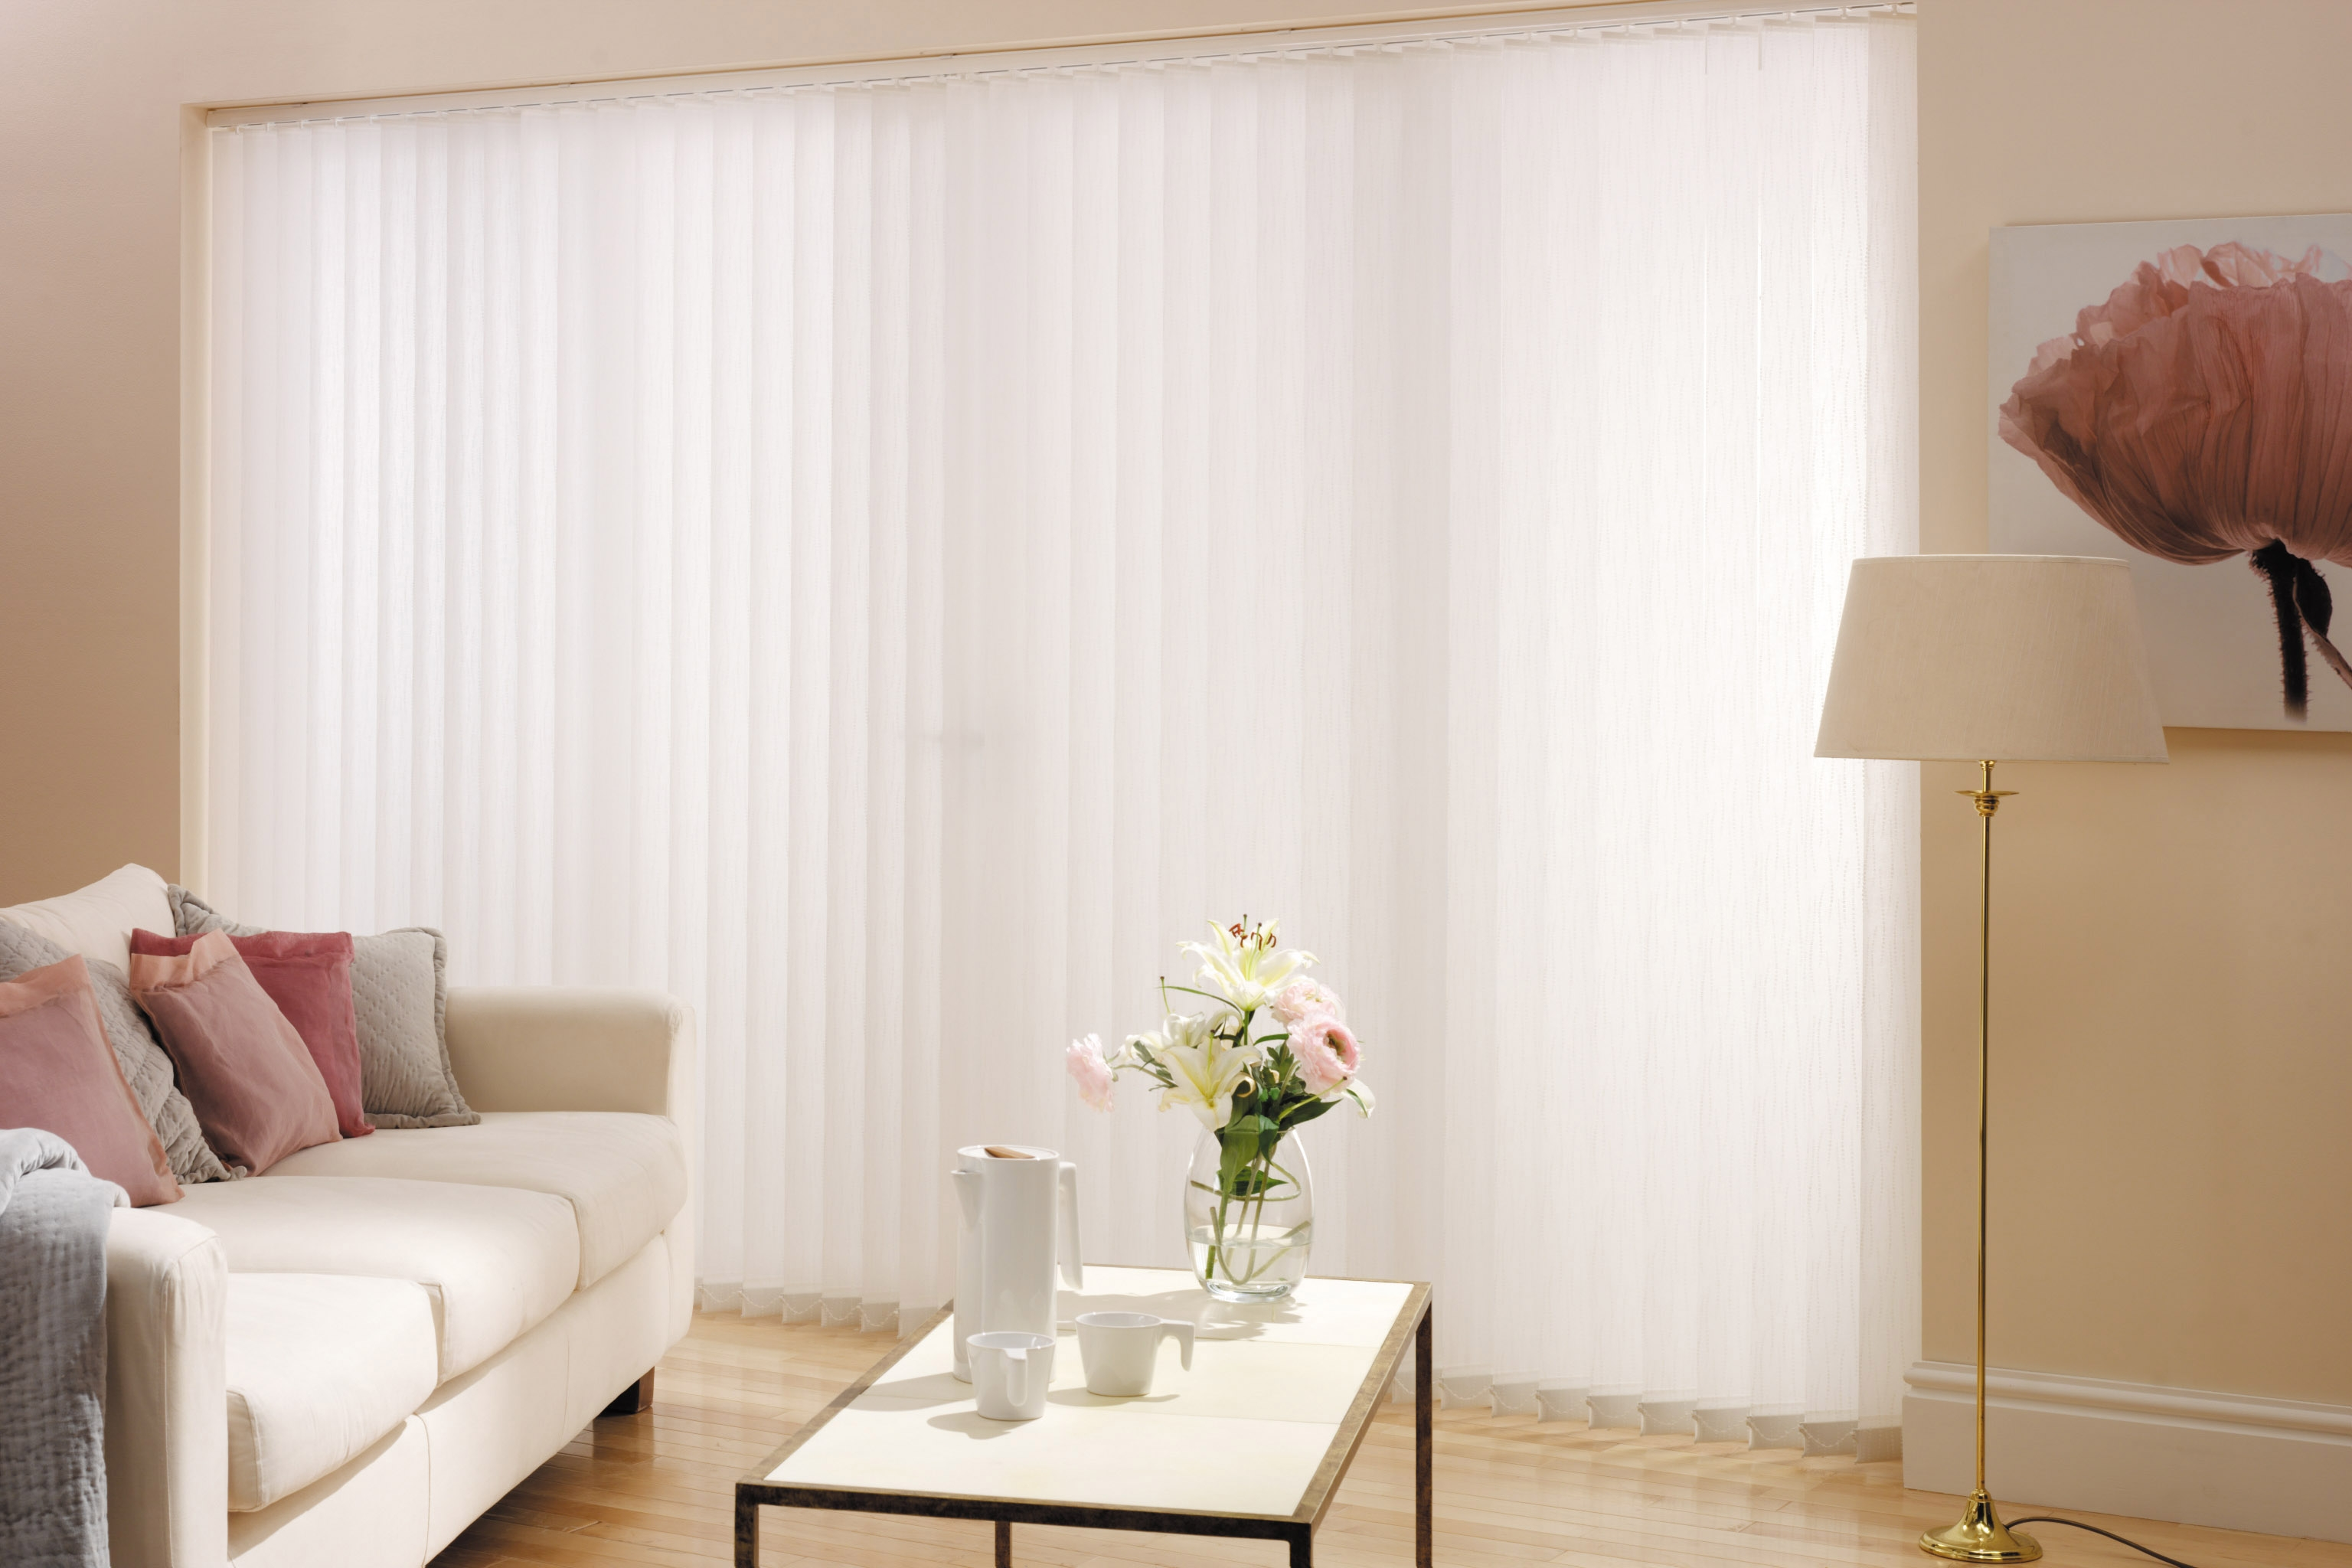 Ba Nursery Decorative Window Blinds Or Shade Brown Velvet Kids With Regard To Velvet Blinds (Image 1 of 15)